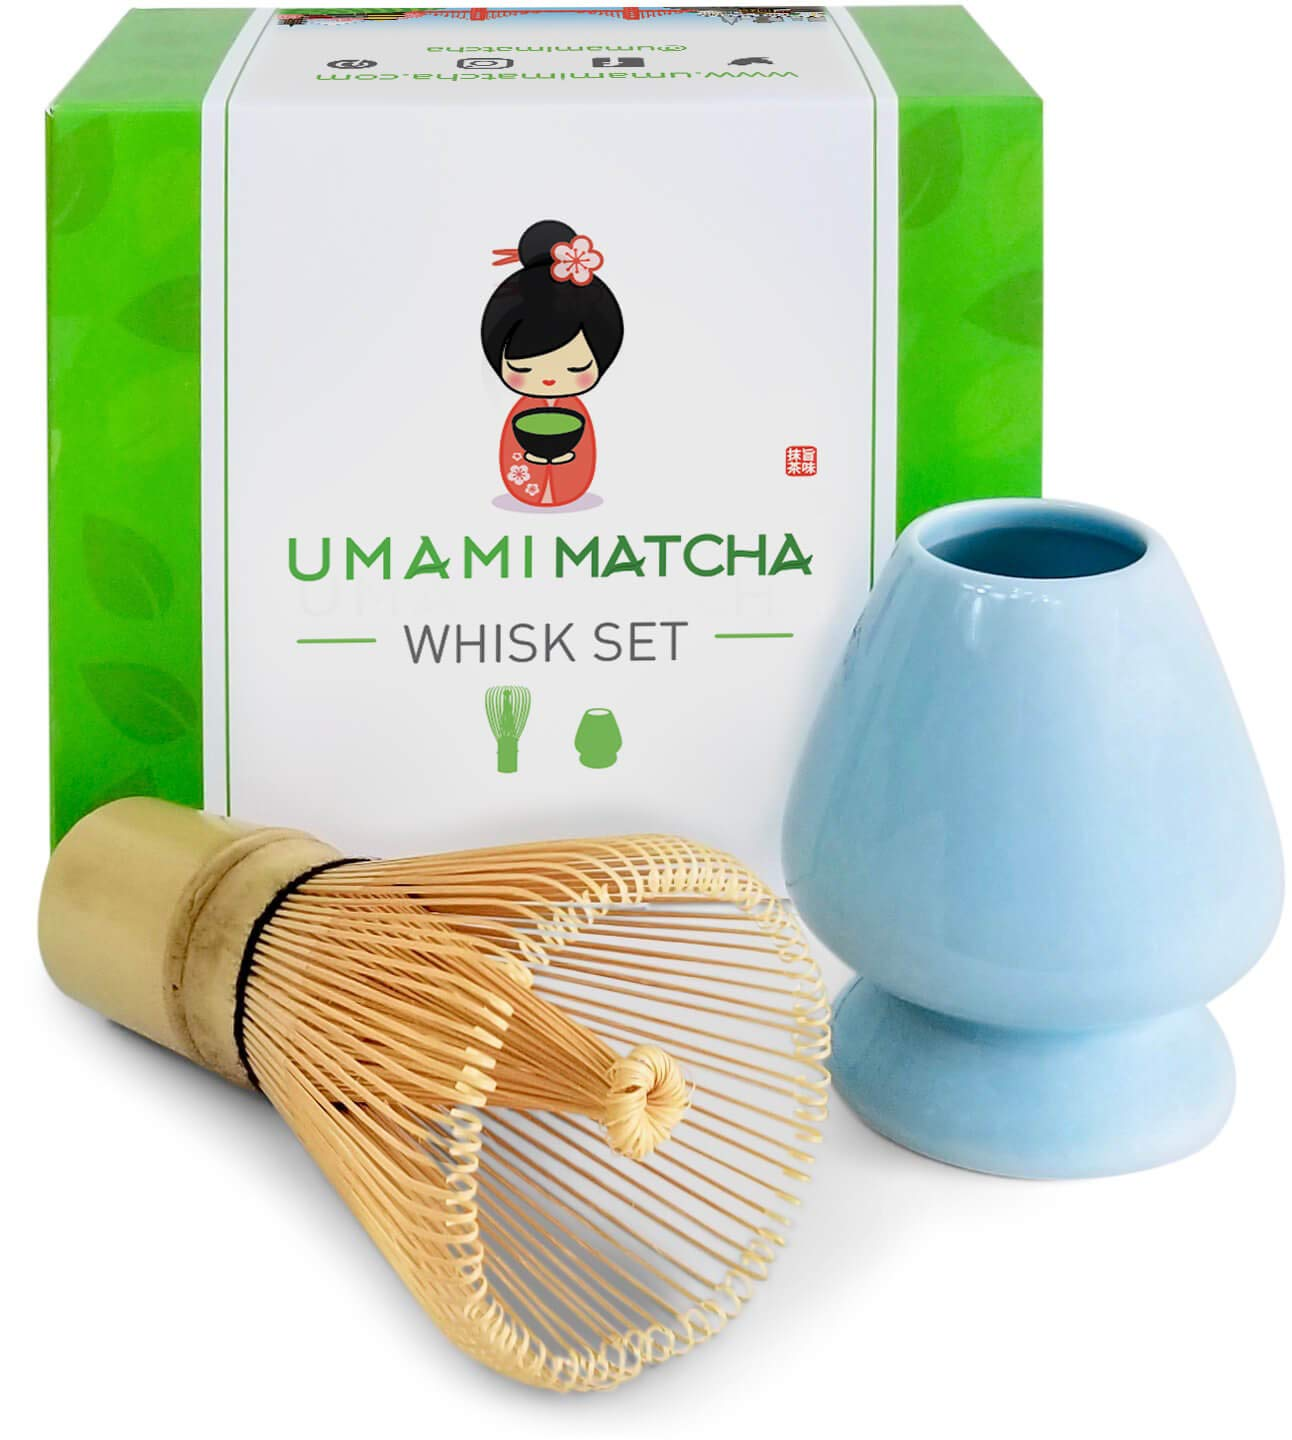 Umami Matcha Whisk Set | Matcha Bamboo Whisk (Chasen) & Blue Ceramic Matcha Whisk Holder | 100 Tine Matcha Tea Wisk & Stand | Ceremonial Matcha Tea Set | Starter Matcha Kit For Japanese Tea Ceremony